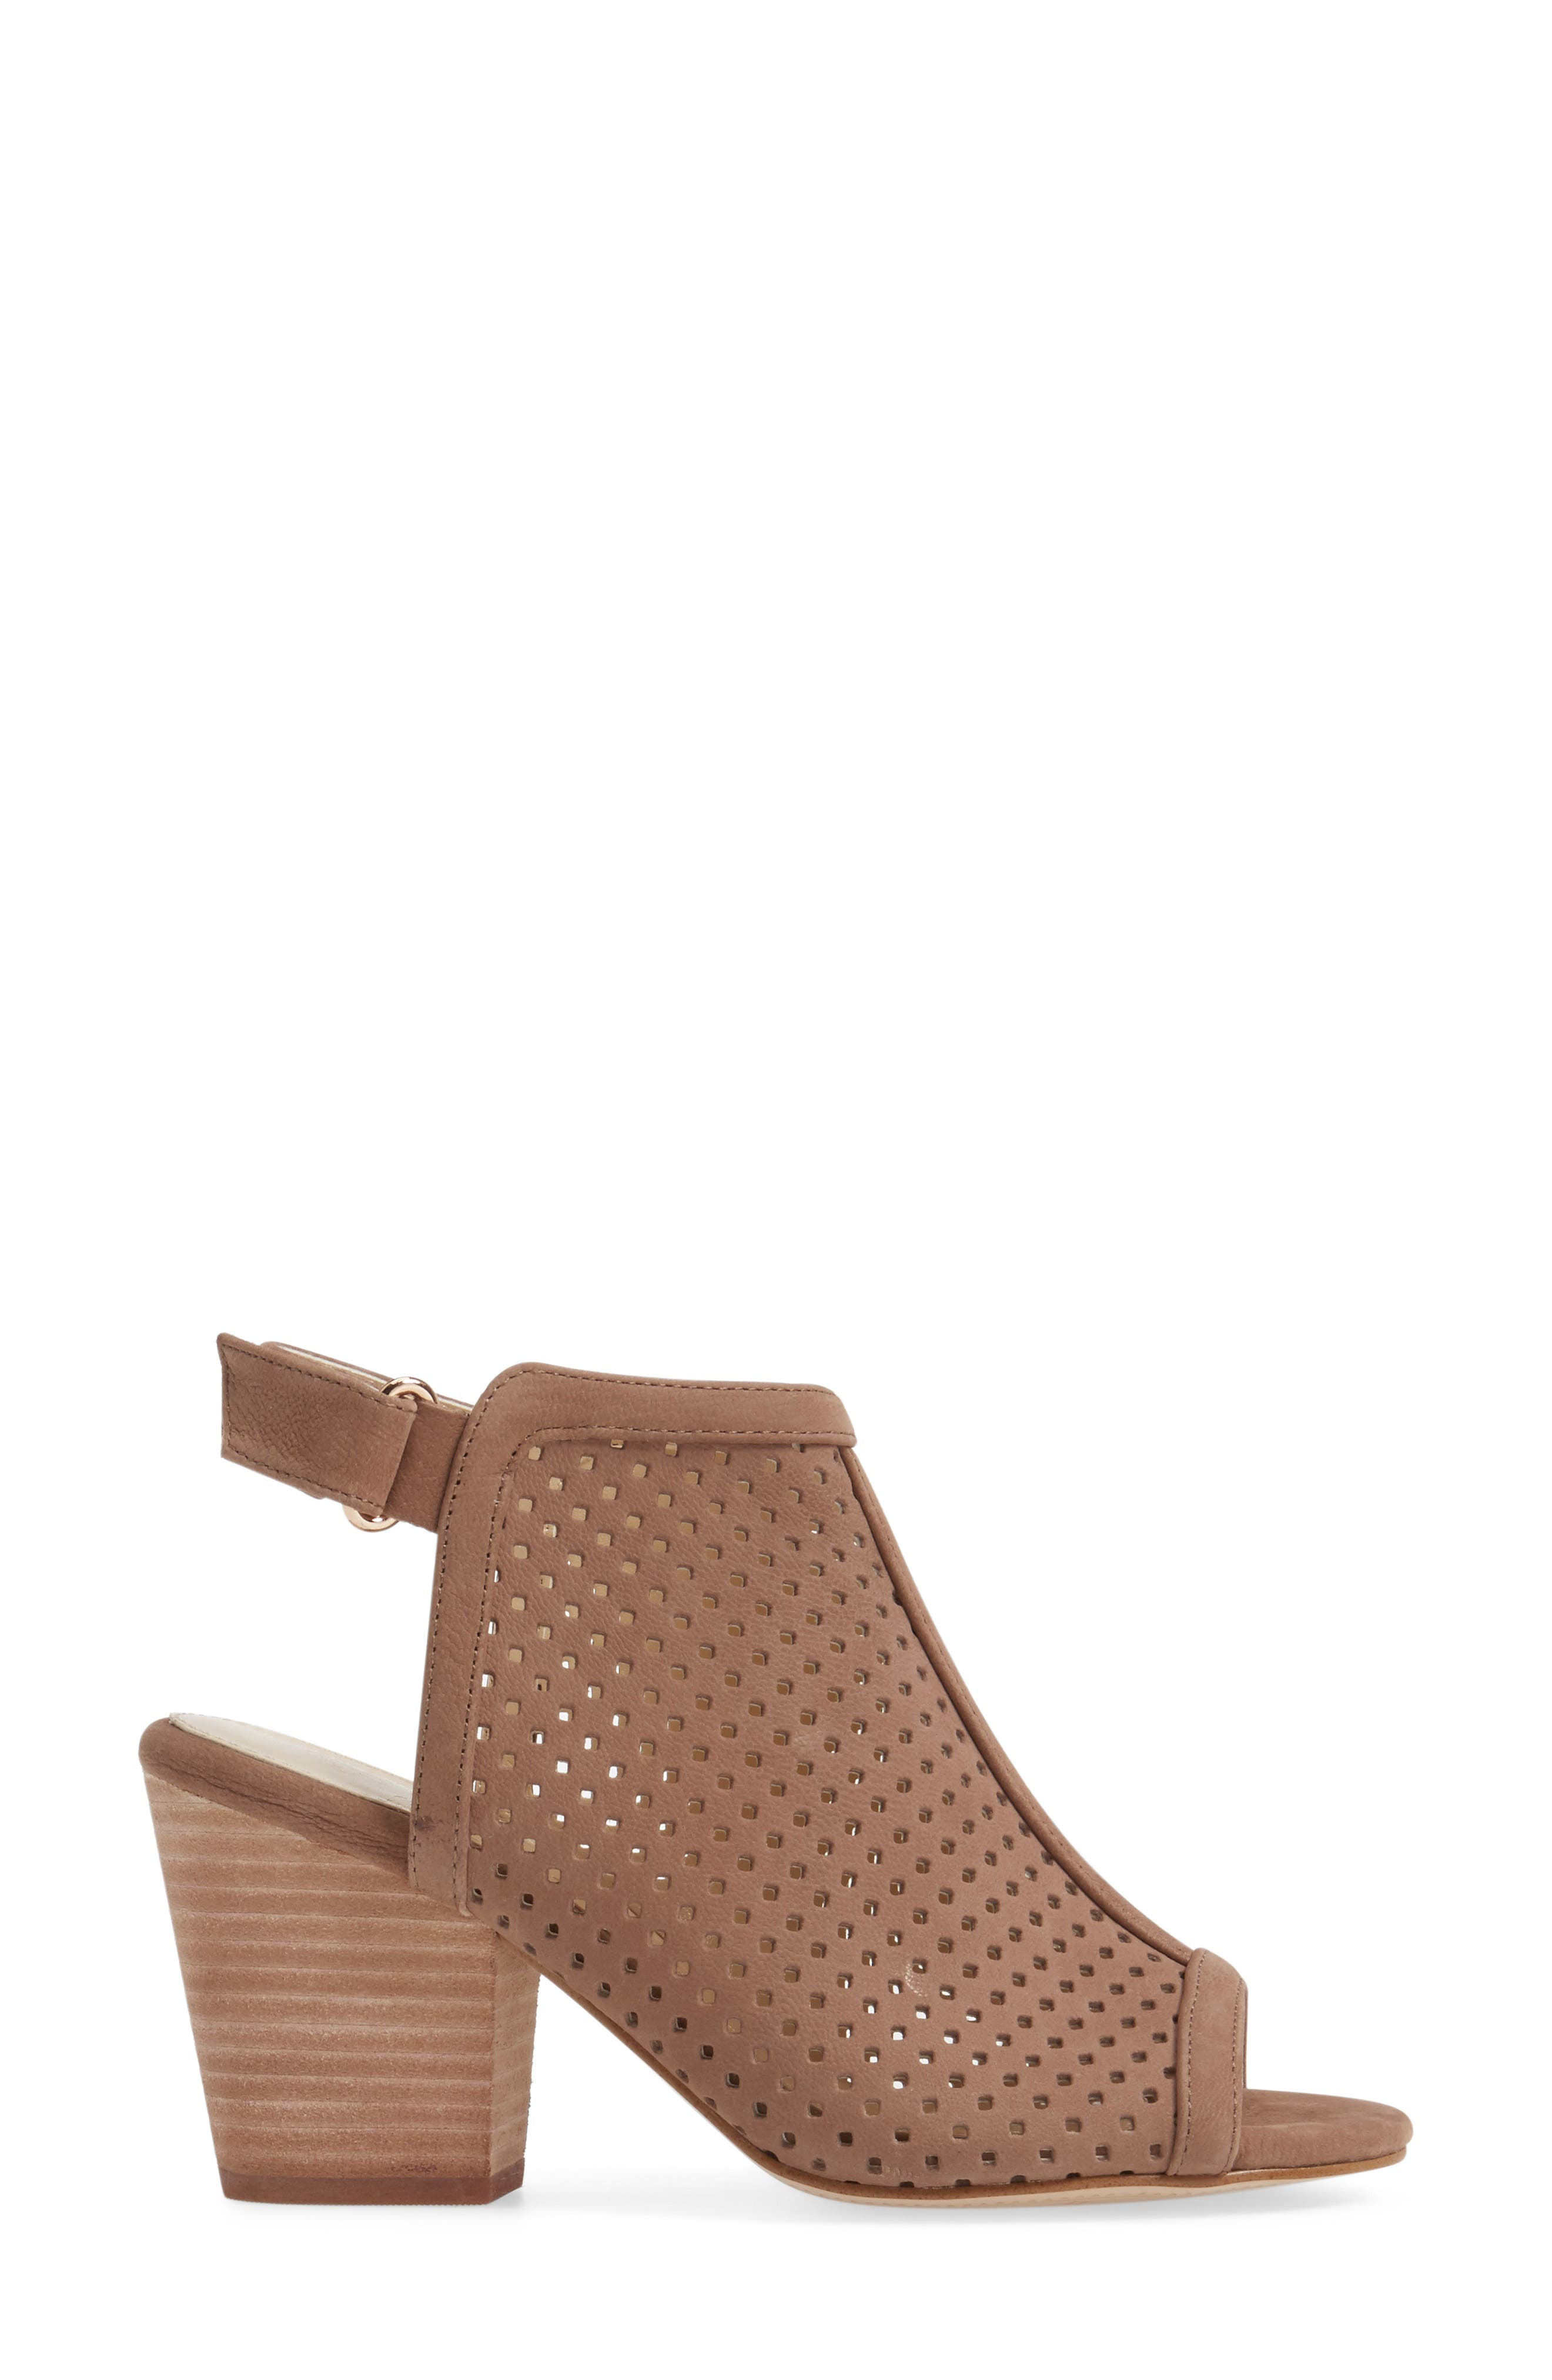 'Lora' Perforated Open-Toe Bootie Sandal,                             Alternate thumbnail 3, color,                             BARLEY LEATHER